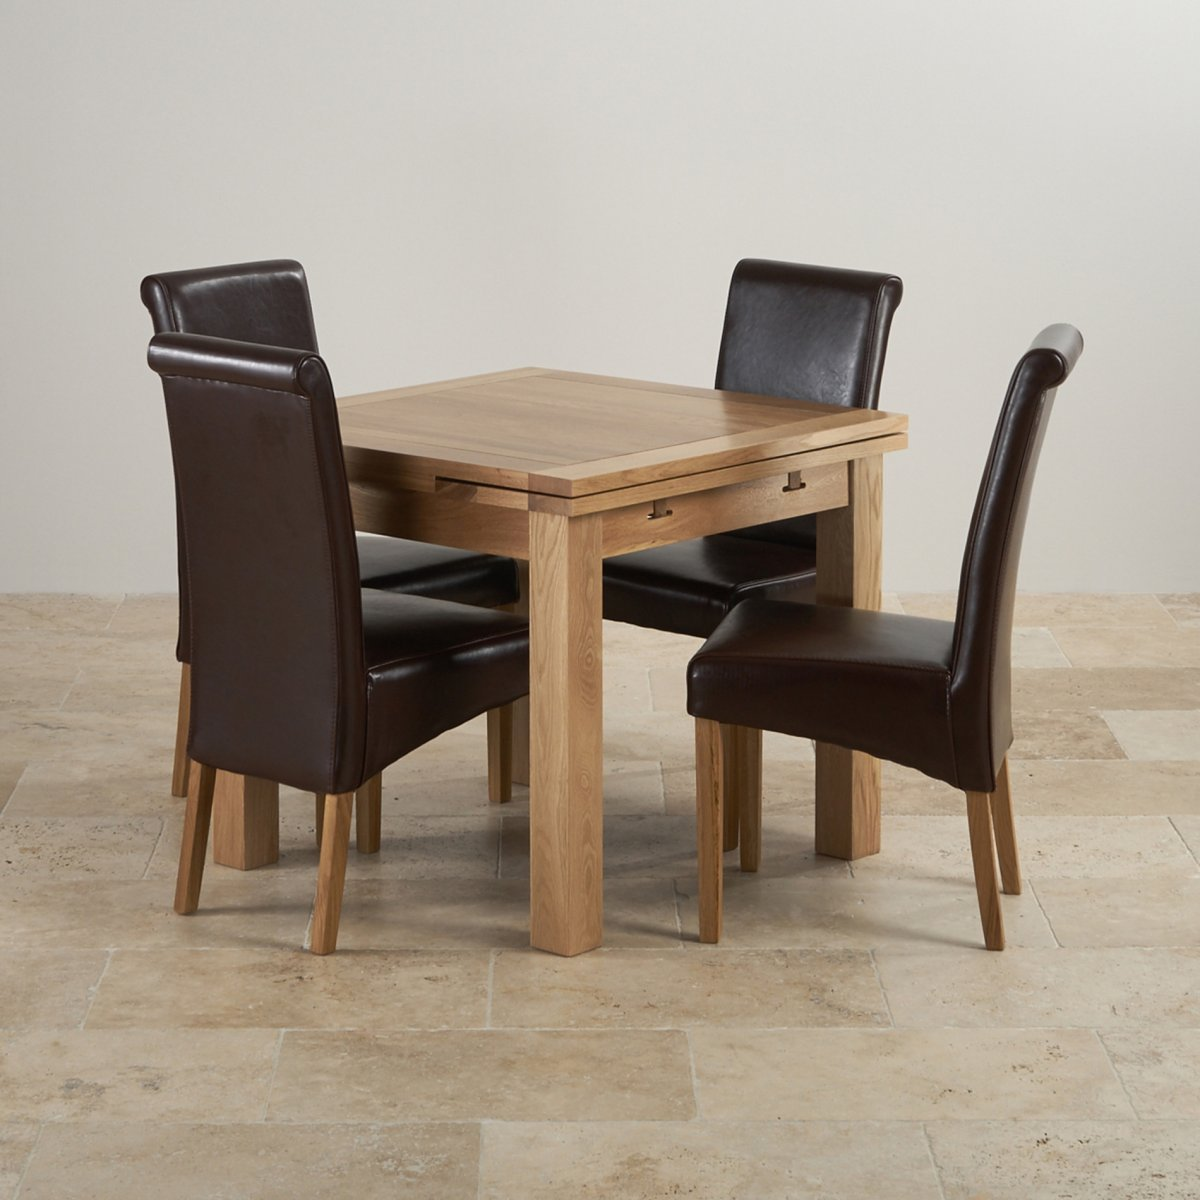 Dorset oak dining set 3ft table with 4 brown chairs for Brown dining table set